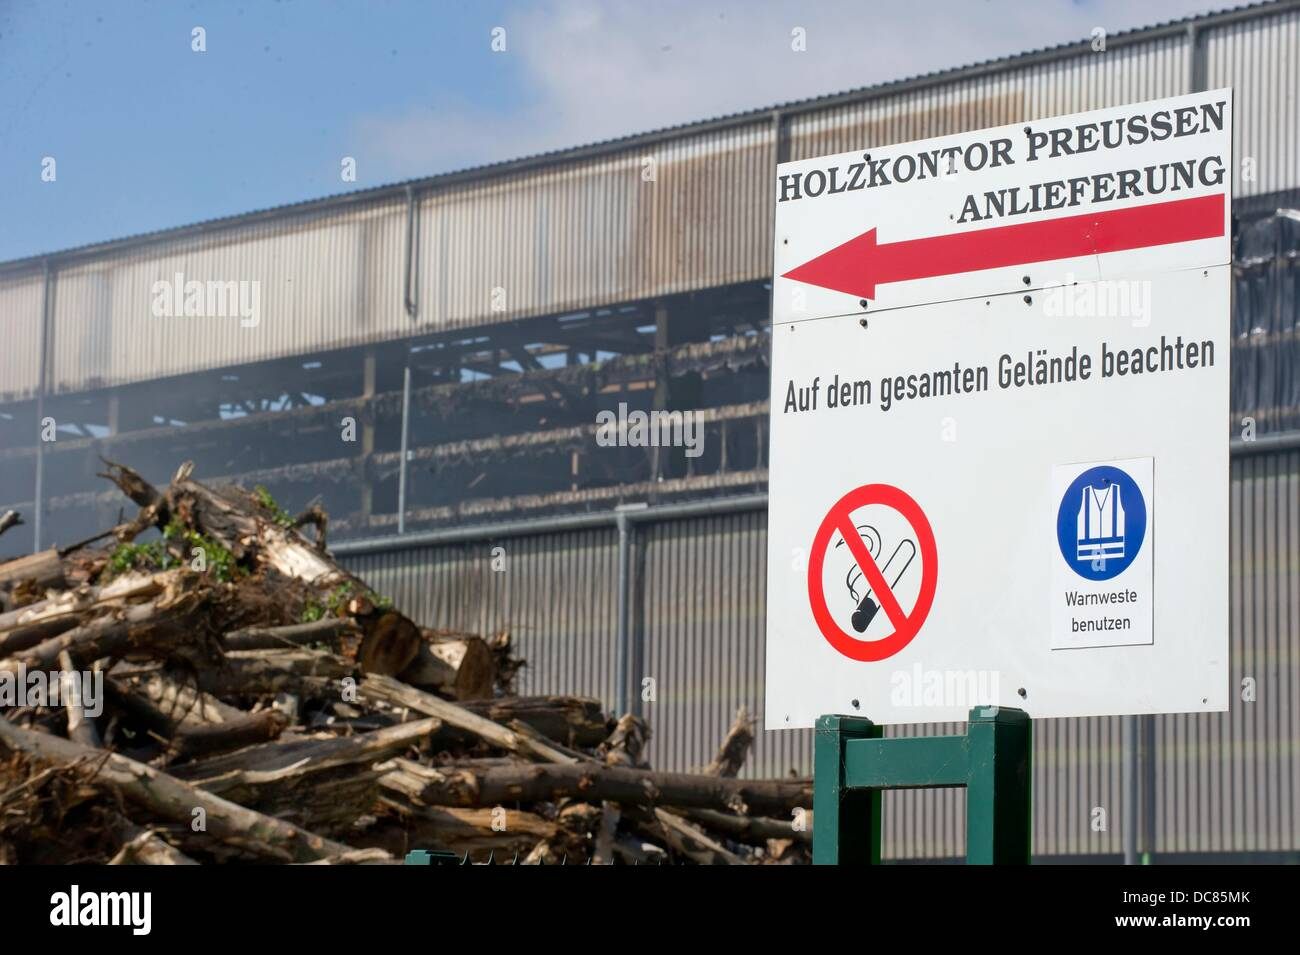 A warning sign that prohibits smoking is seen in front of a smoking hall of a wood recycling plant in Berlin, Germany, - Stock Image